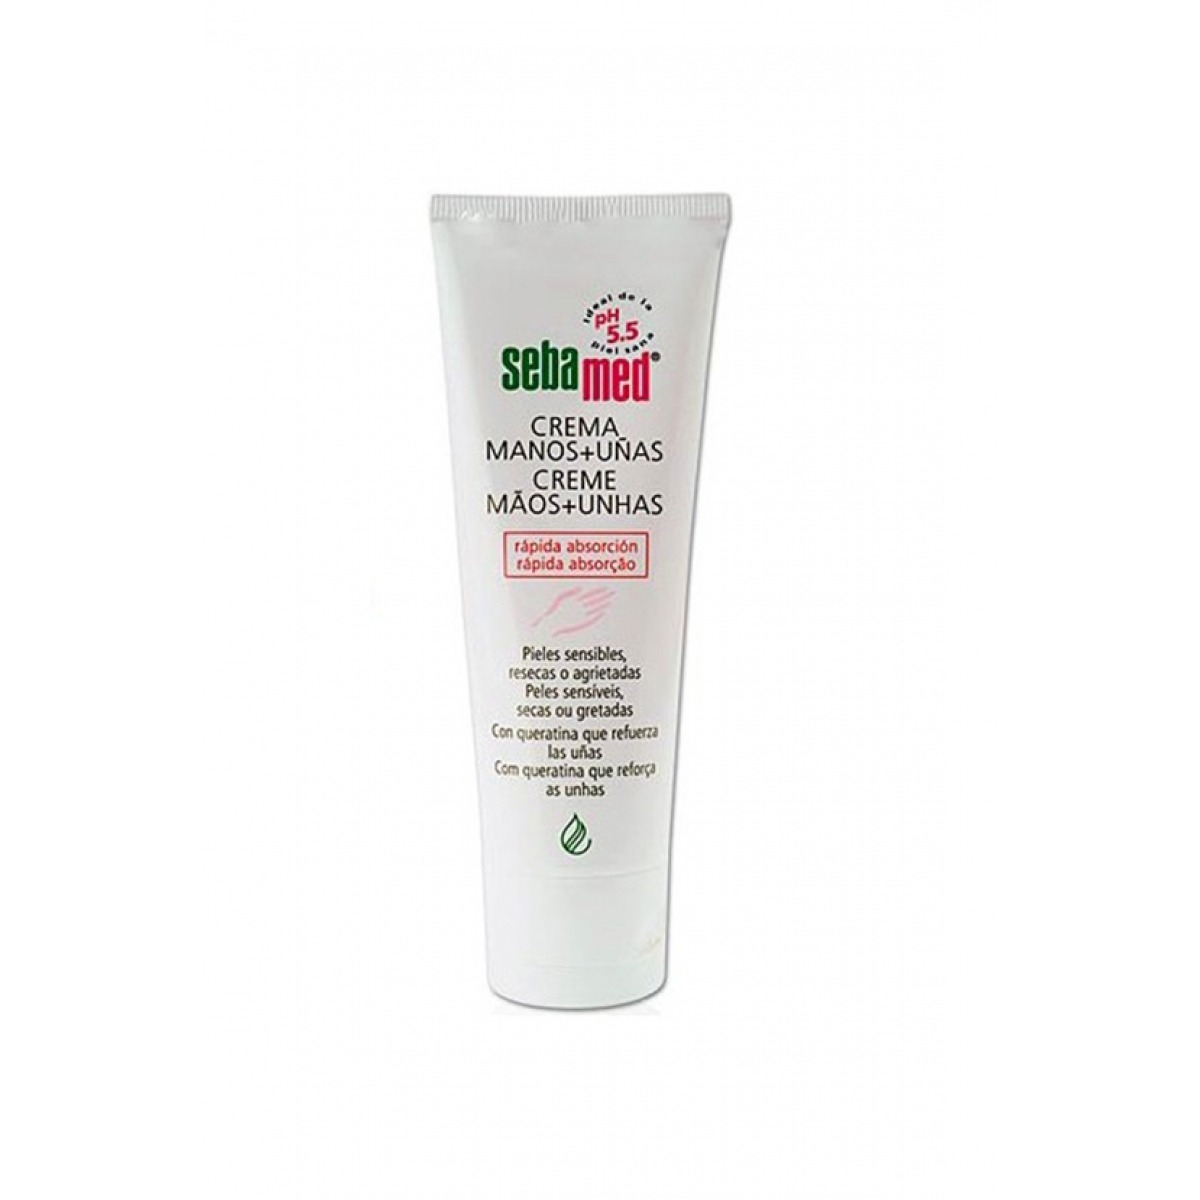 SEBAMED CREMA DE MANOS Y UAS 75 ML.